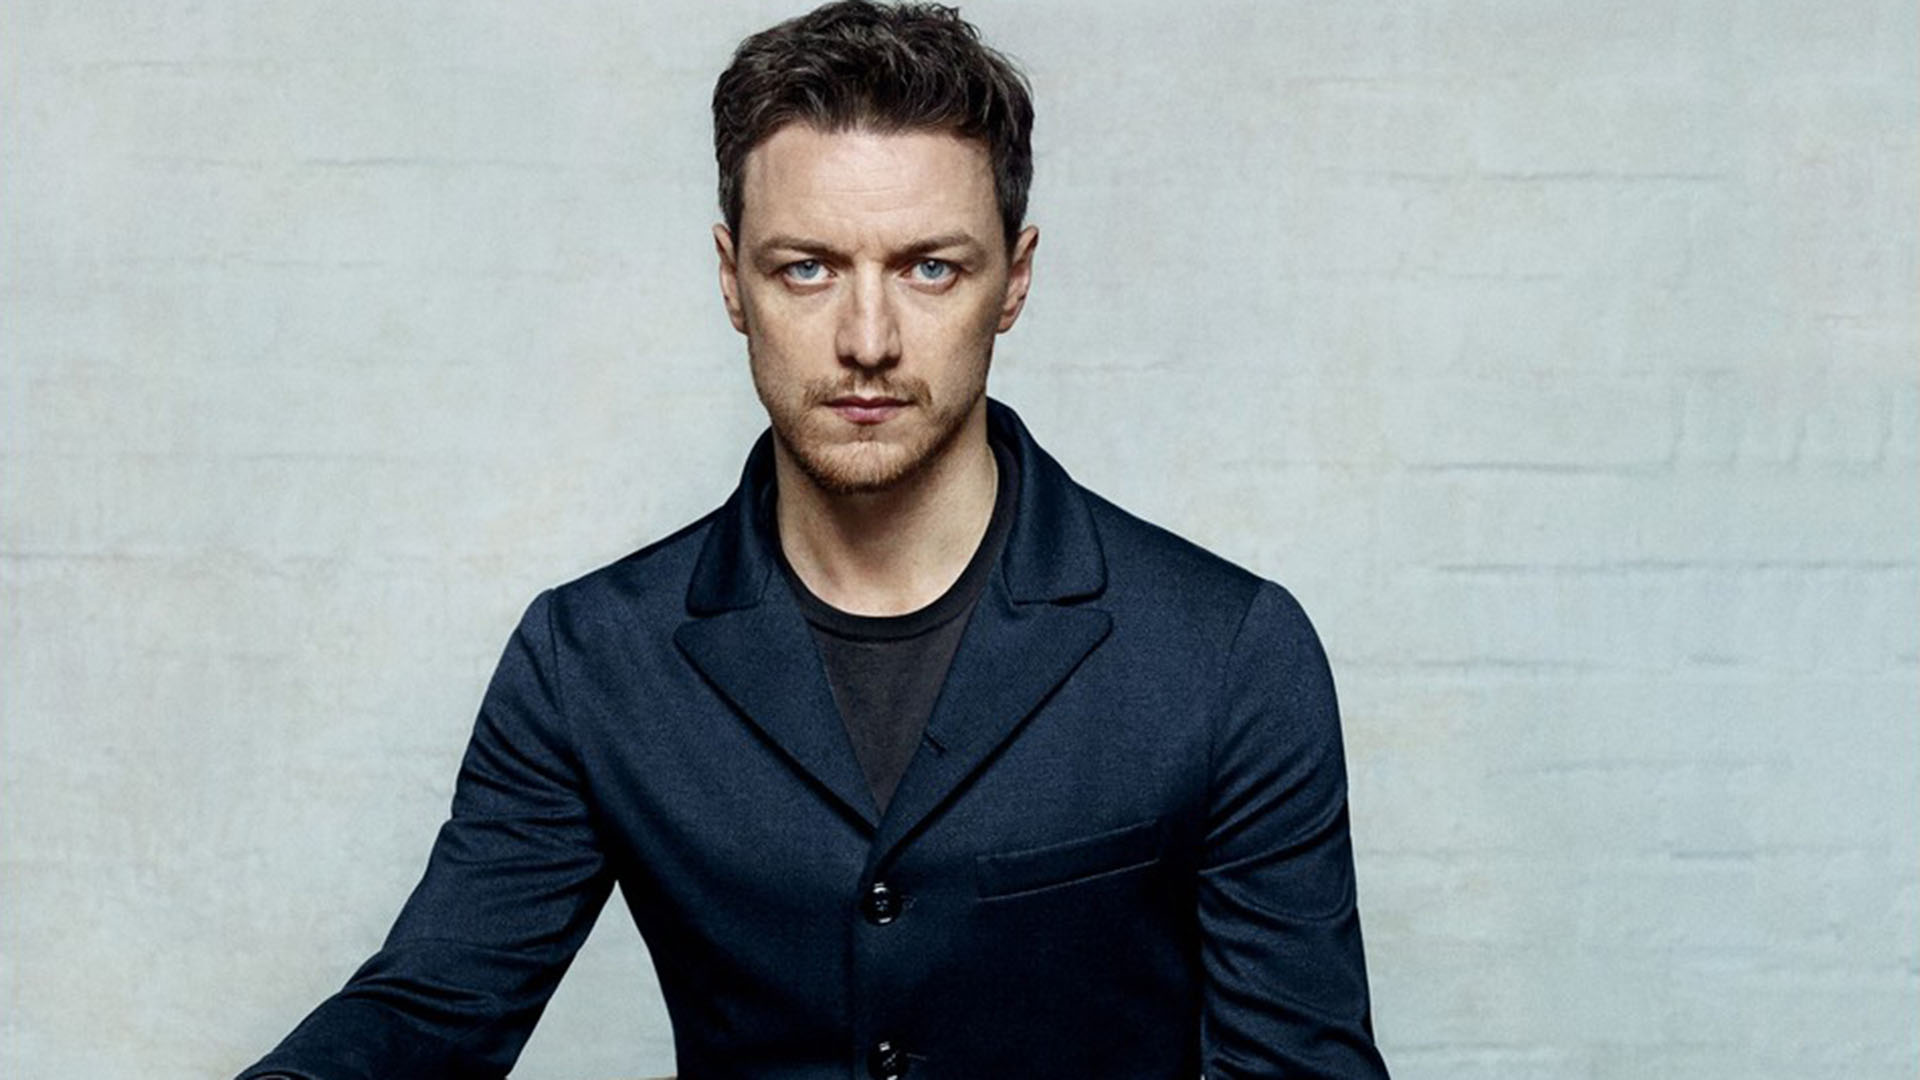 James Mcavoy Full hd wallpapers